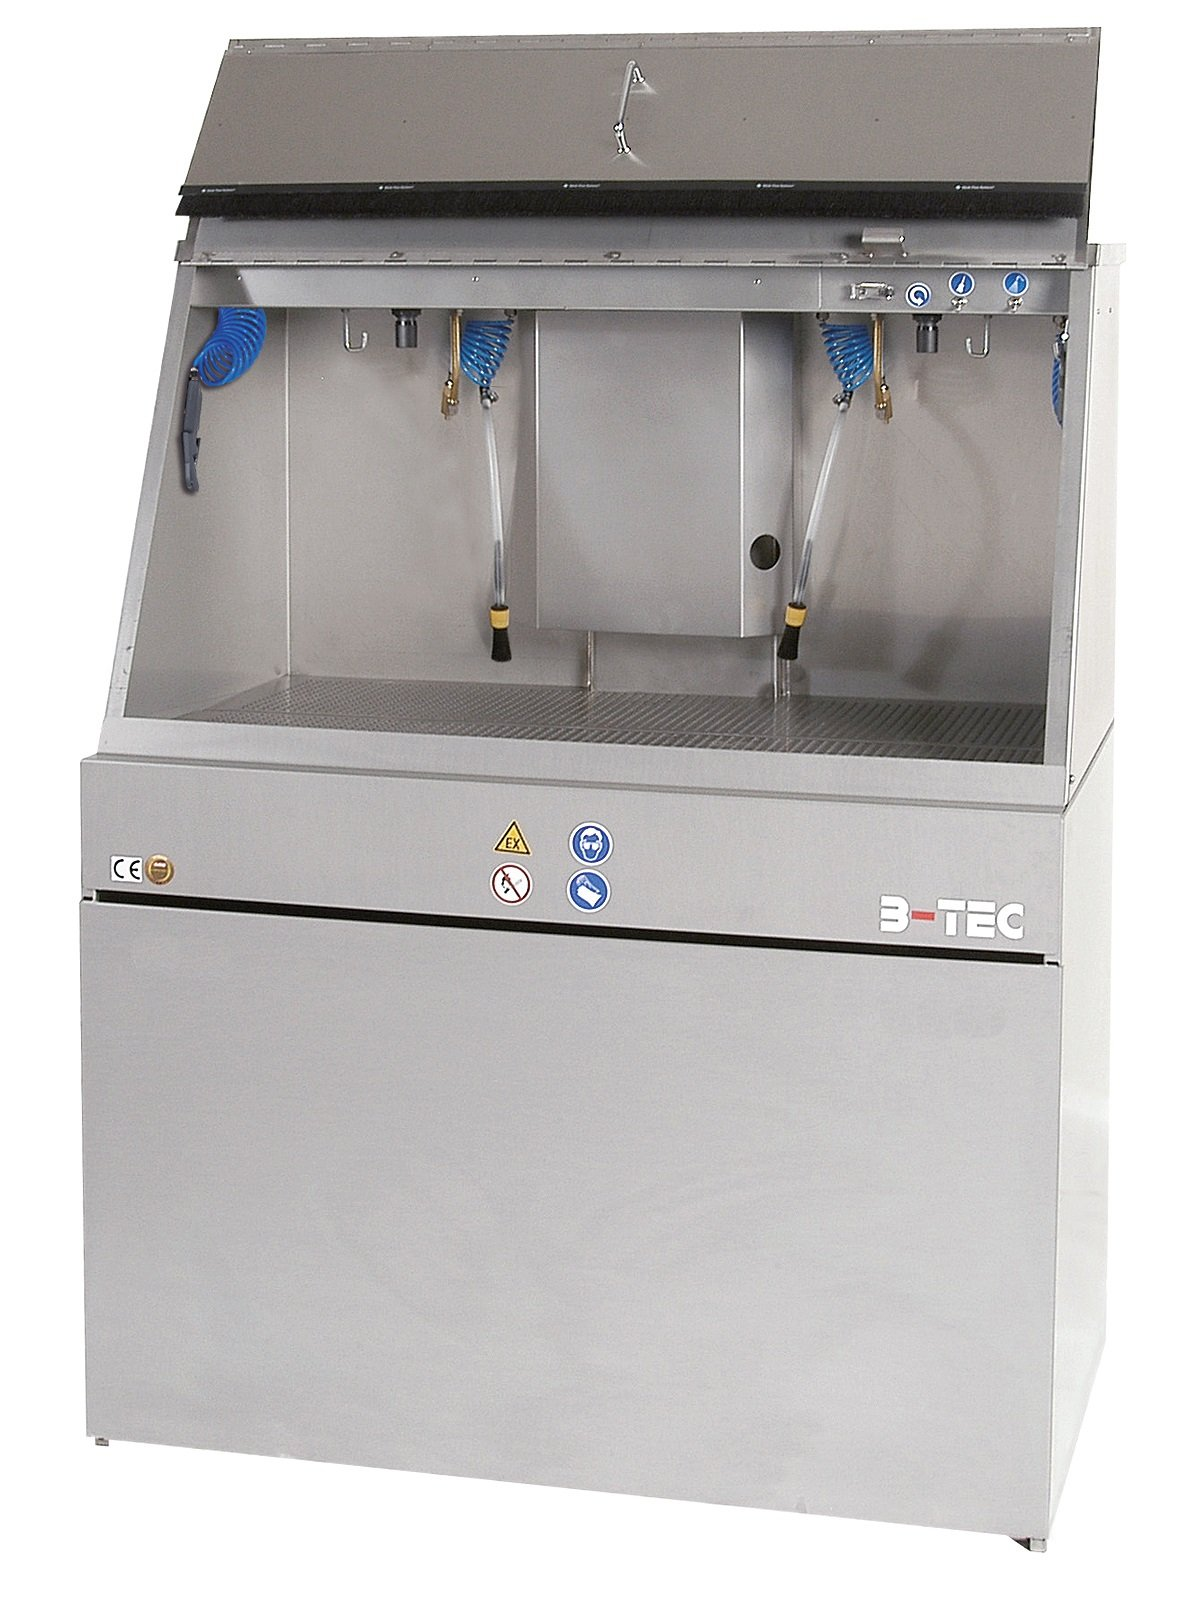 B-TEC Systems M-1200-2 Stainless Steel Manual Large Capacity Cabinet Spray Gun Washer with 2 Operator Options and F-1300 Flap, 47'' Length x 27-1/2'' Width x 70'' Height,for Solvent or Water